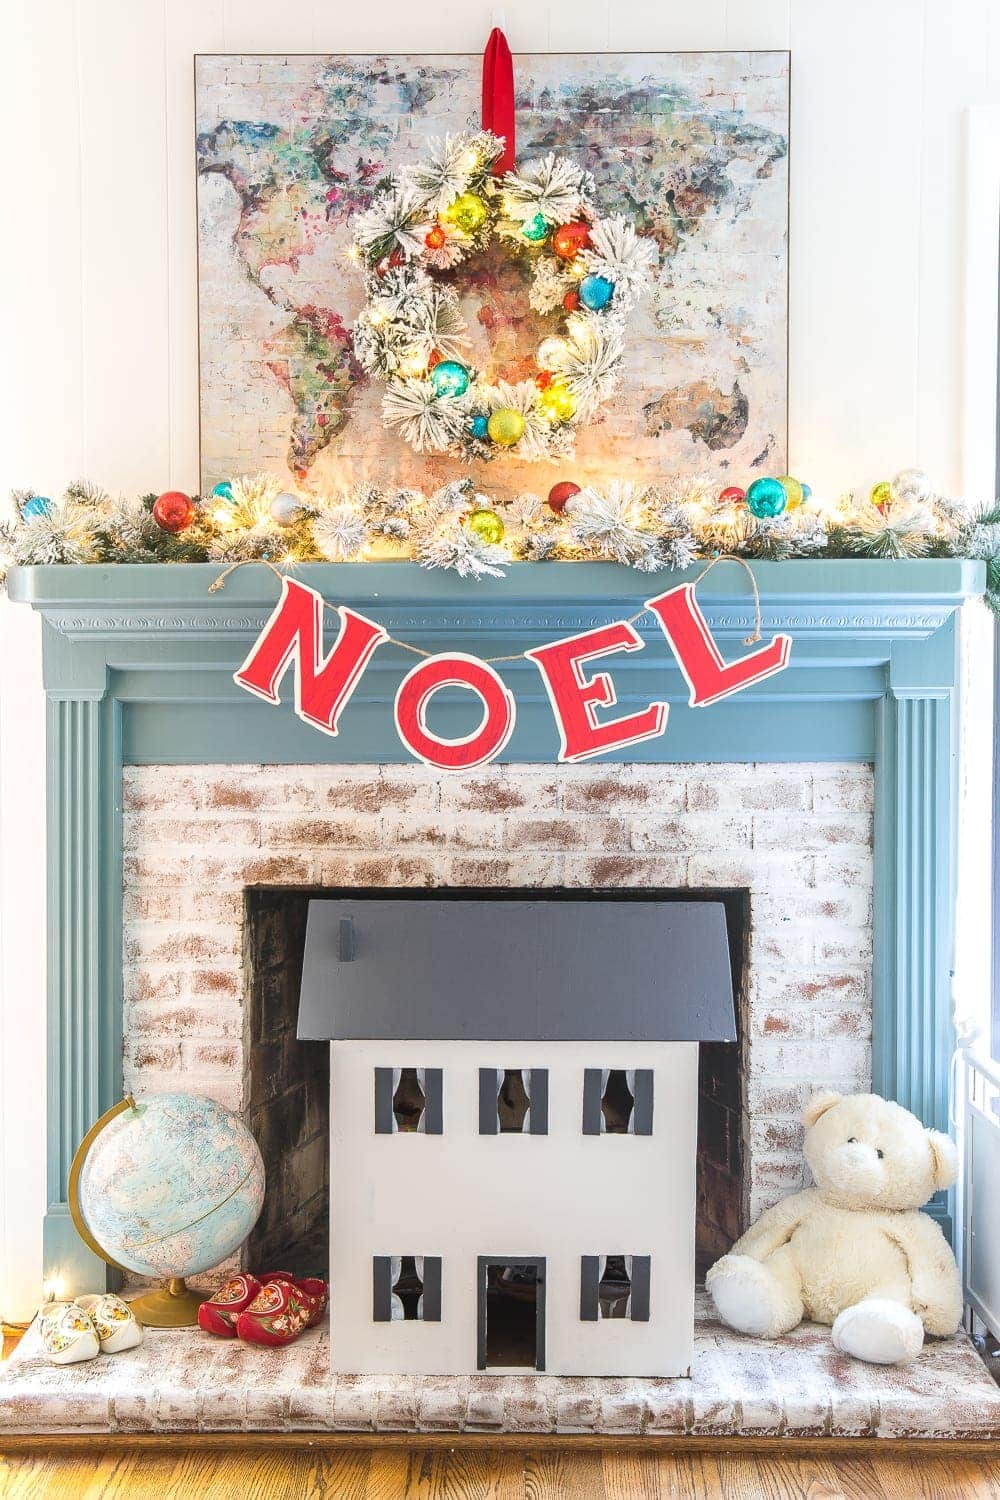 Playroom fireplace and mantel decorated for Christmas